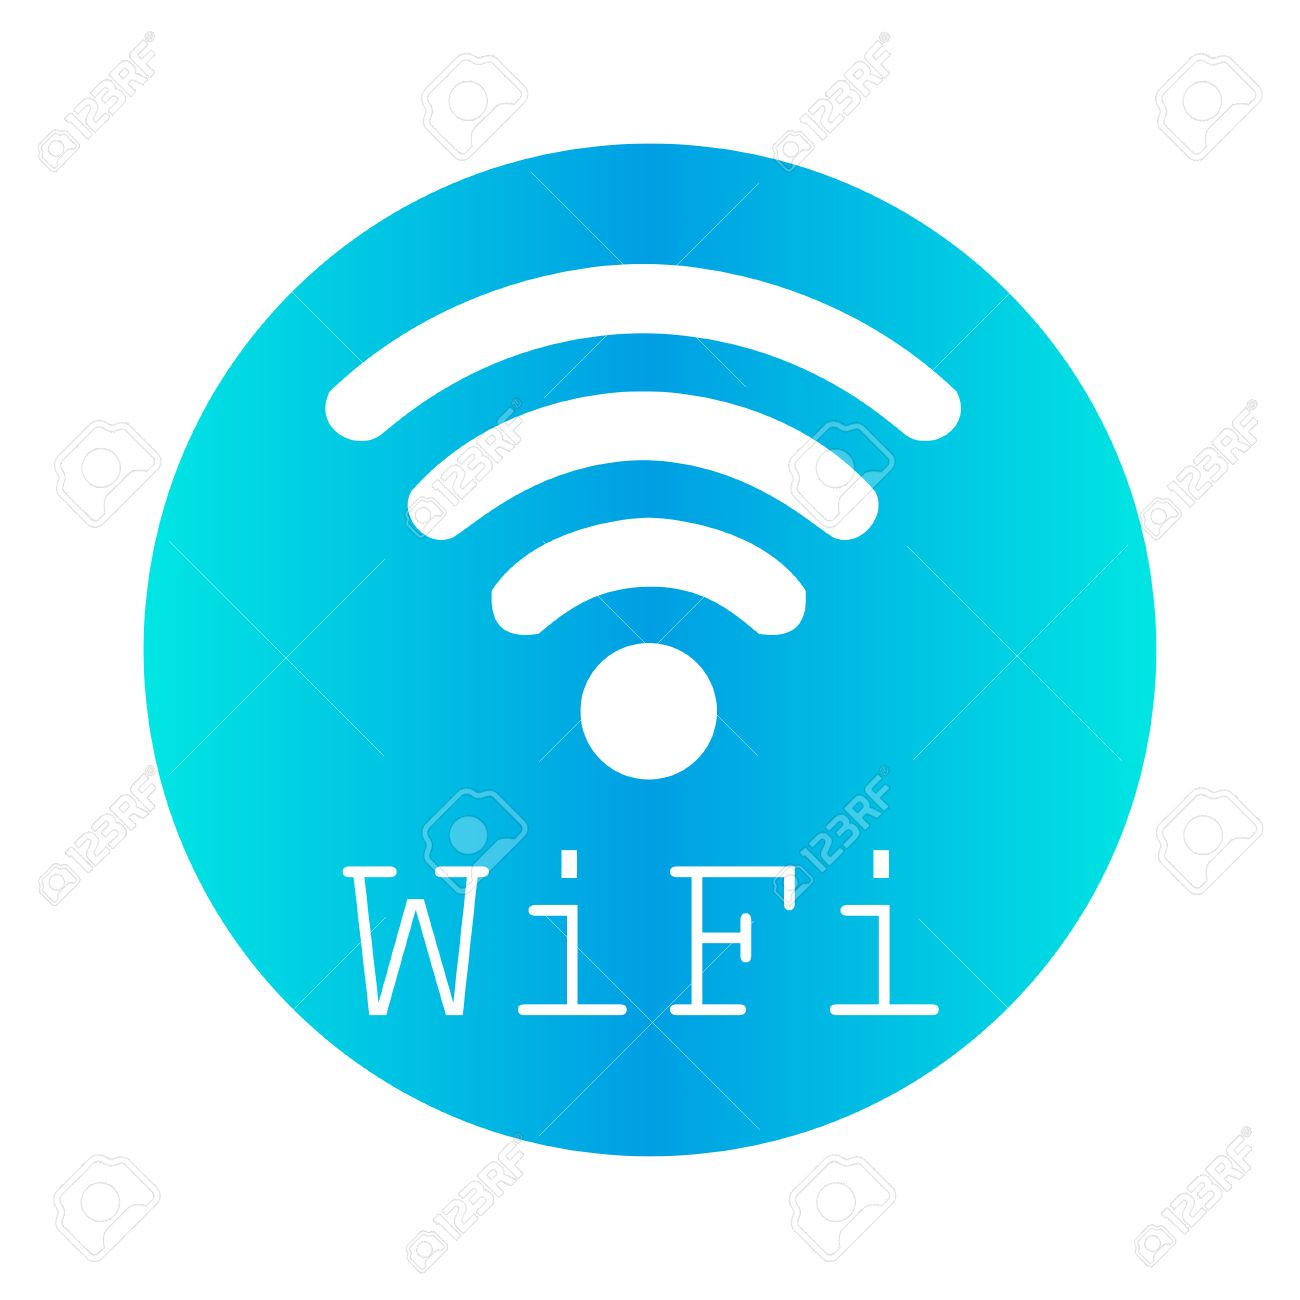 wifi logo on a blue circle on a white background royalty free